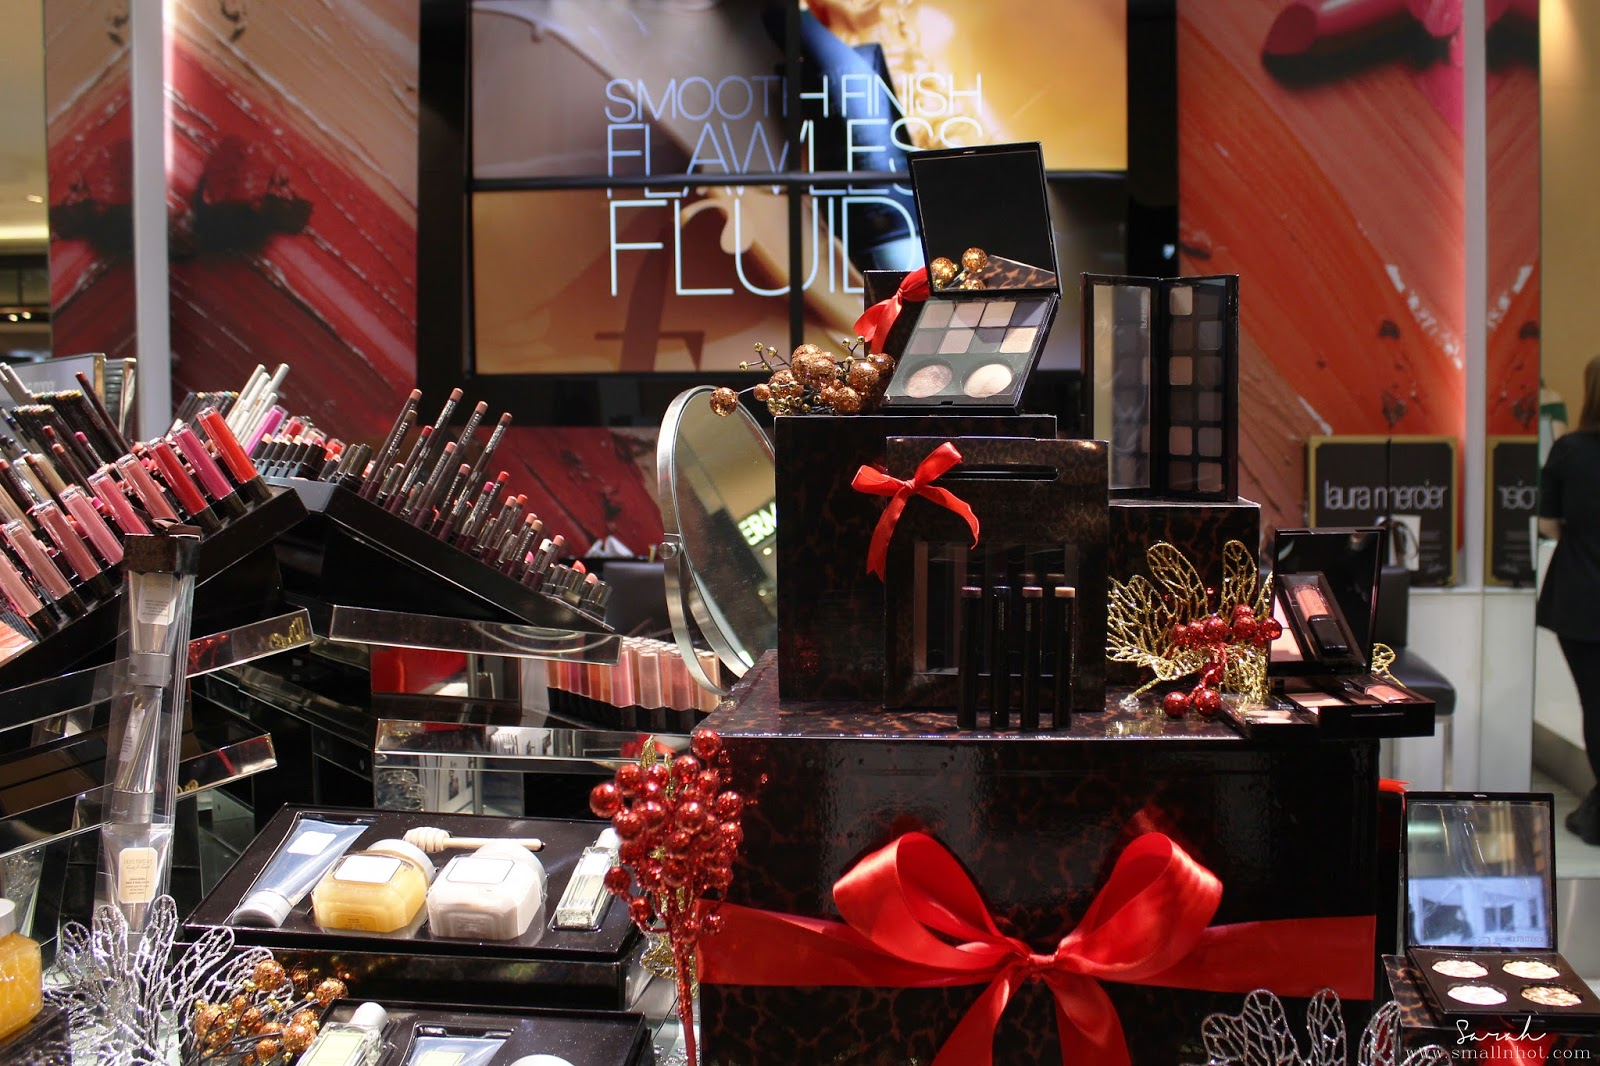 Laura Mercier christmas collection 2016; laura mercier gift sets; laura mercier holiday skincare collection; laura mercier holiday gift set price; laura mercier holiday makeup collection; Malaysia beauty online magazine; singapore beauty online magazine; must have laura mercier holiday collection